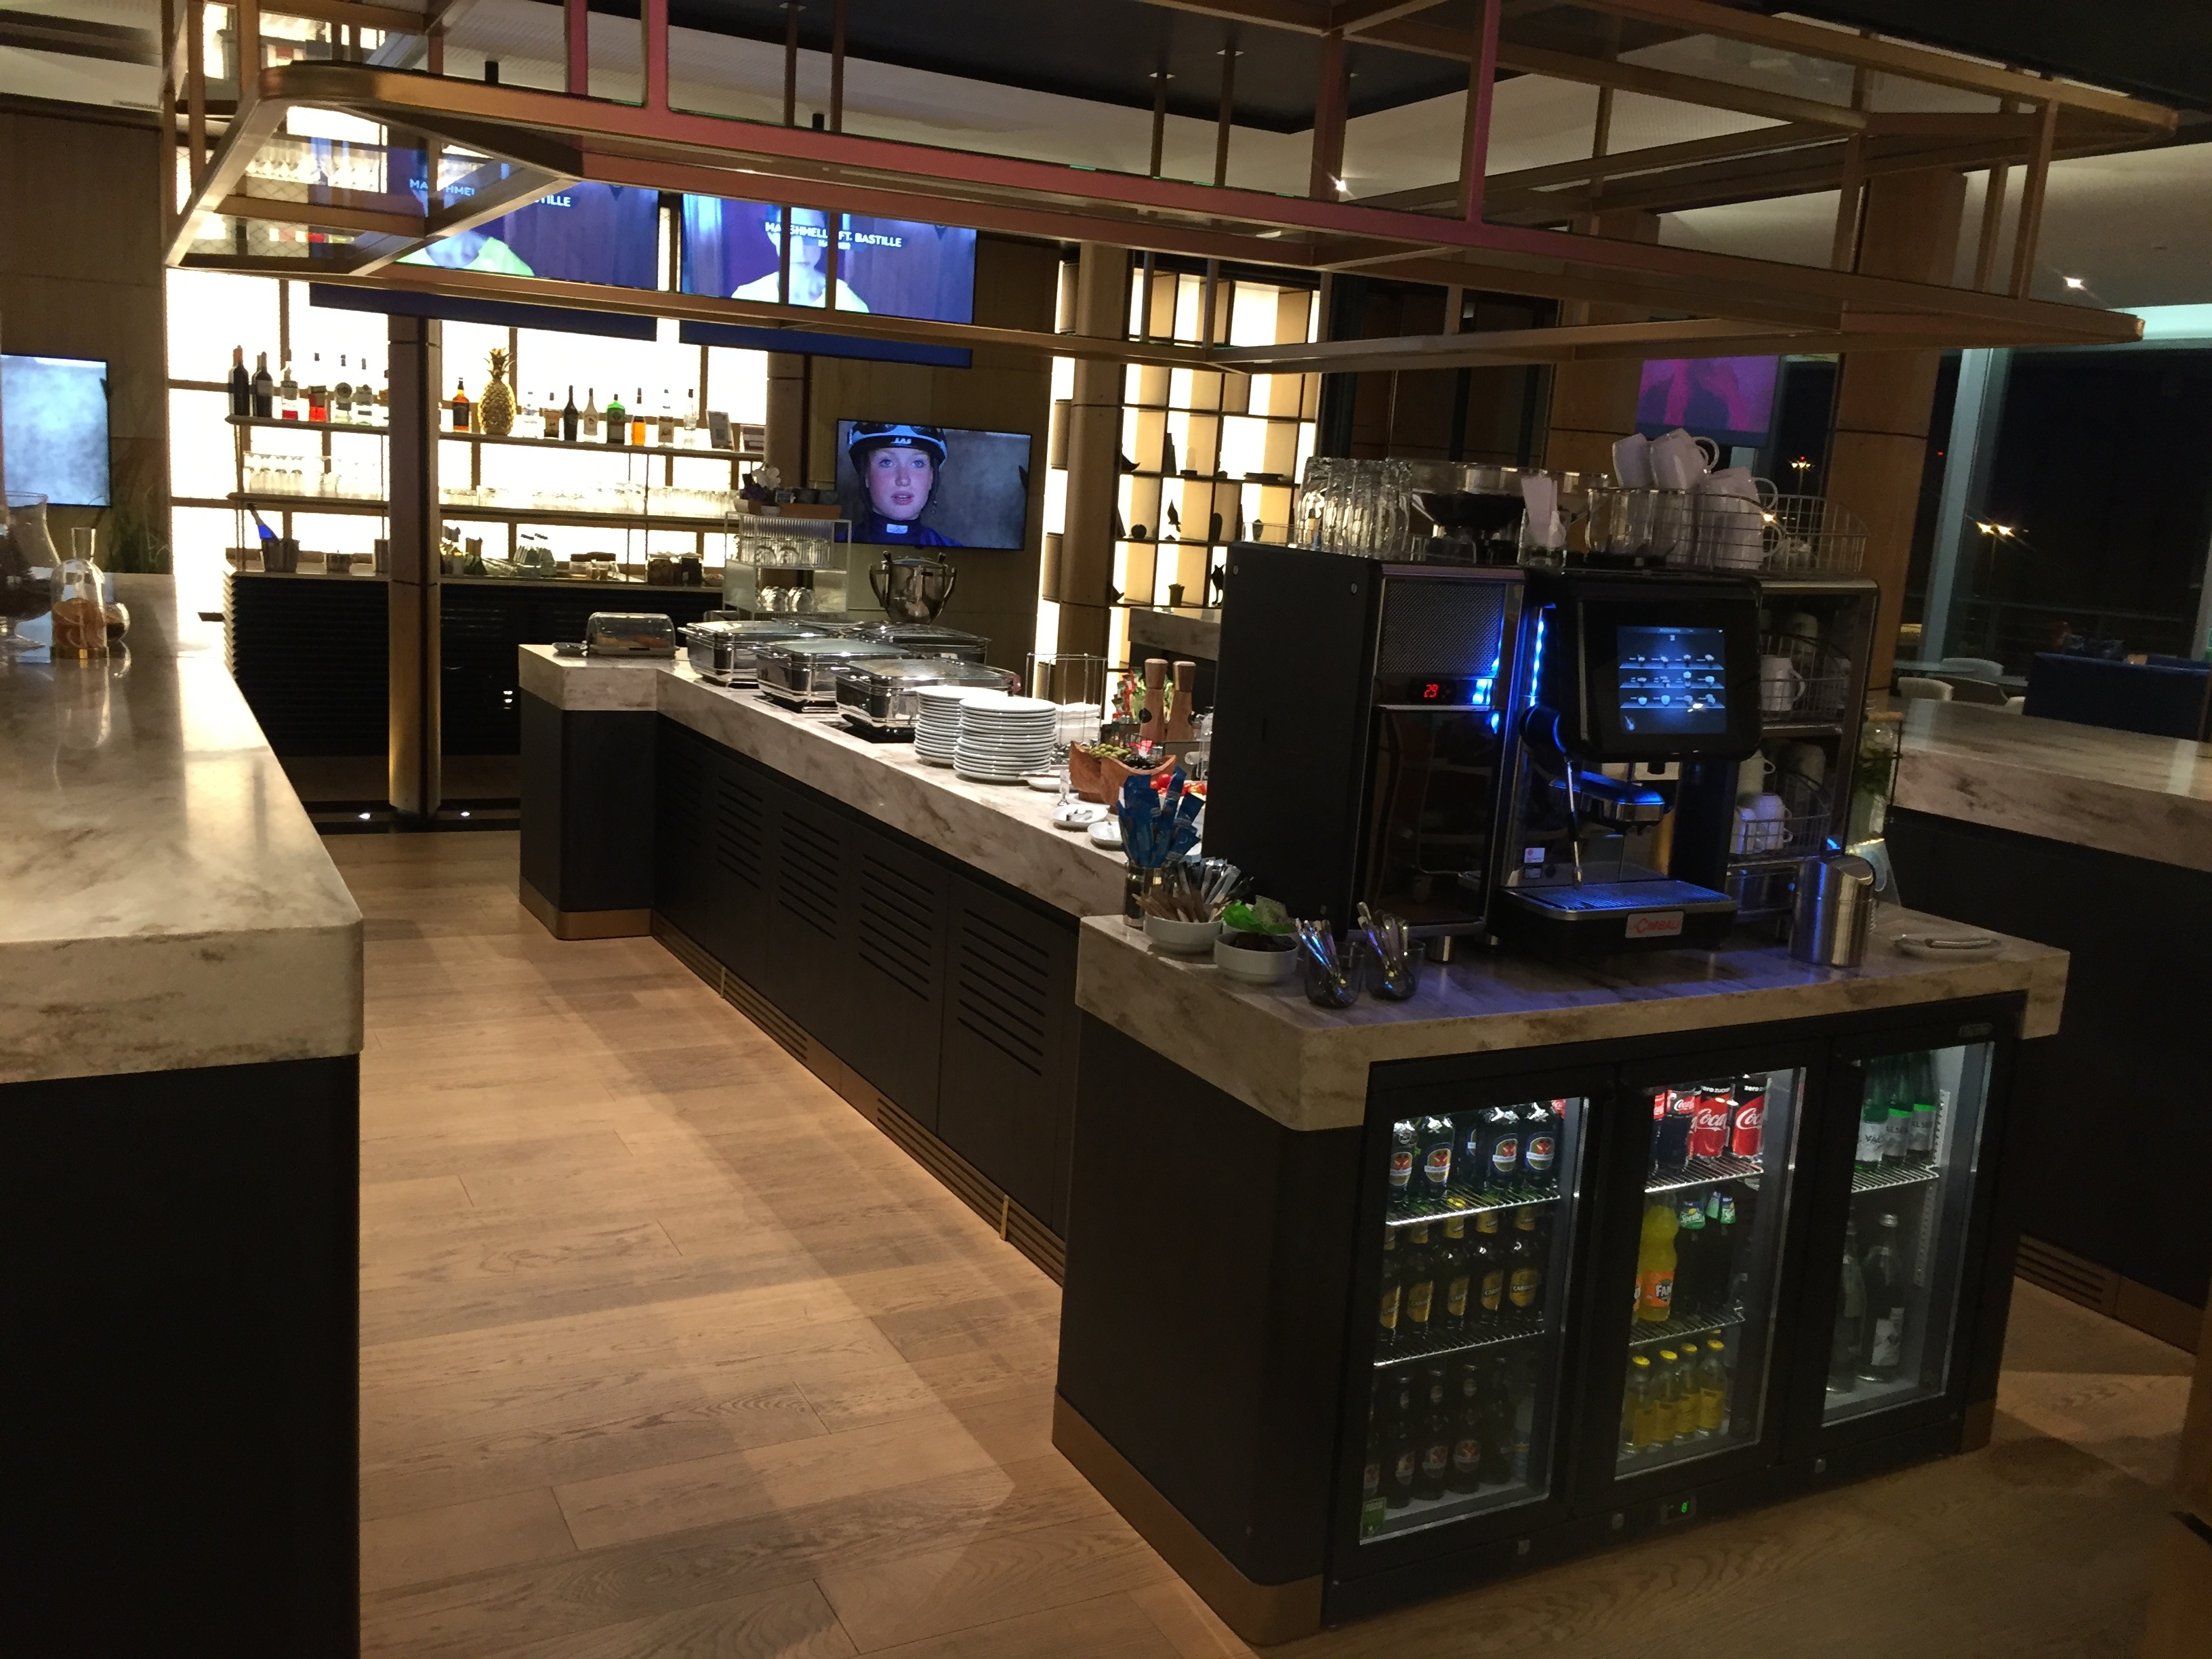 Buffet area with a wide selection for breakfast - Zurich Terminal E